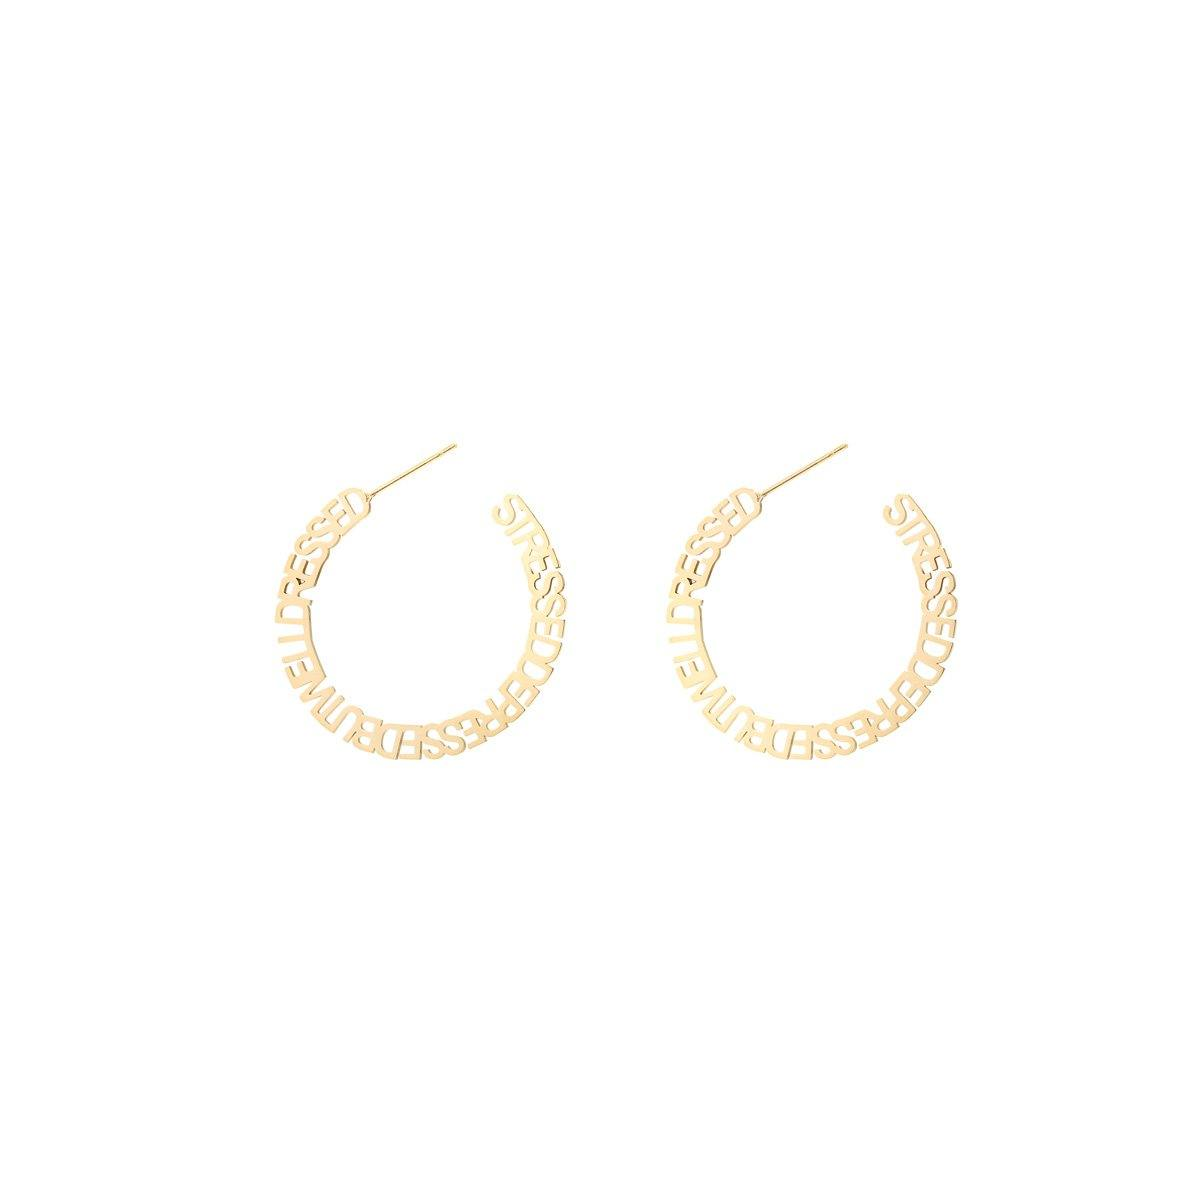 STRESSED DEPRESSED EARRINGS - ZARIA.SE